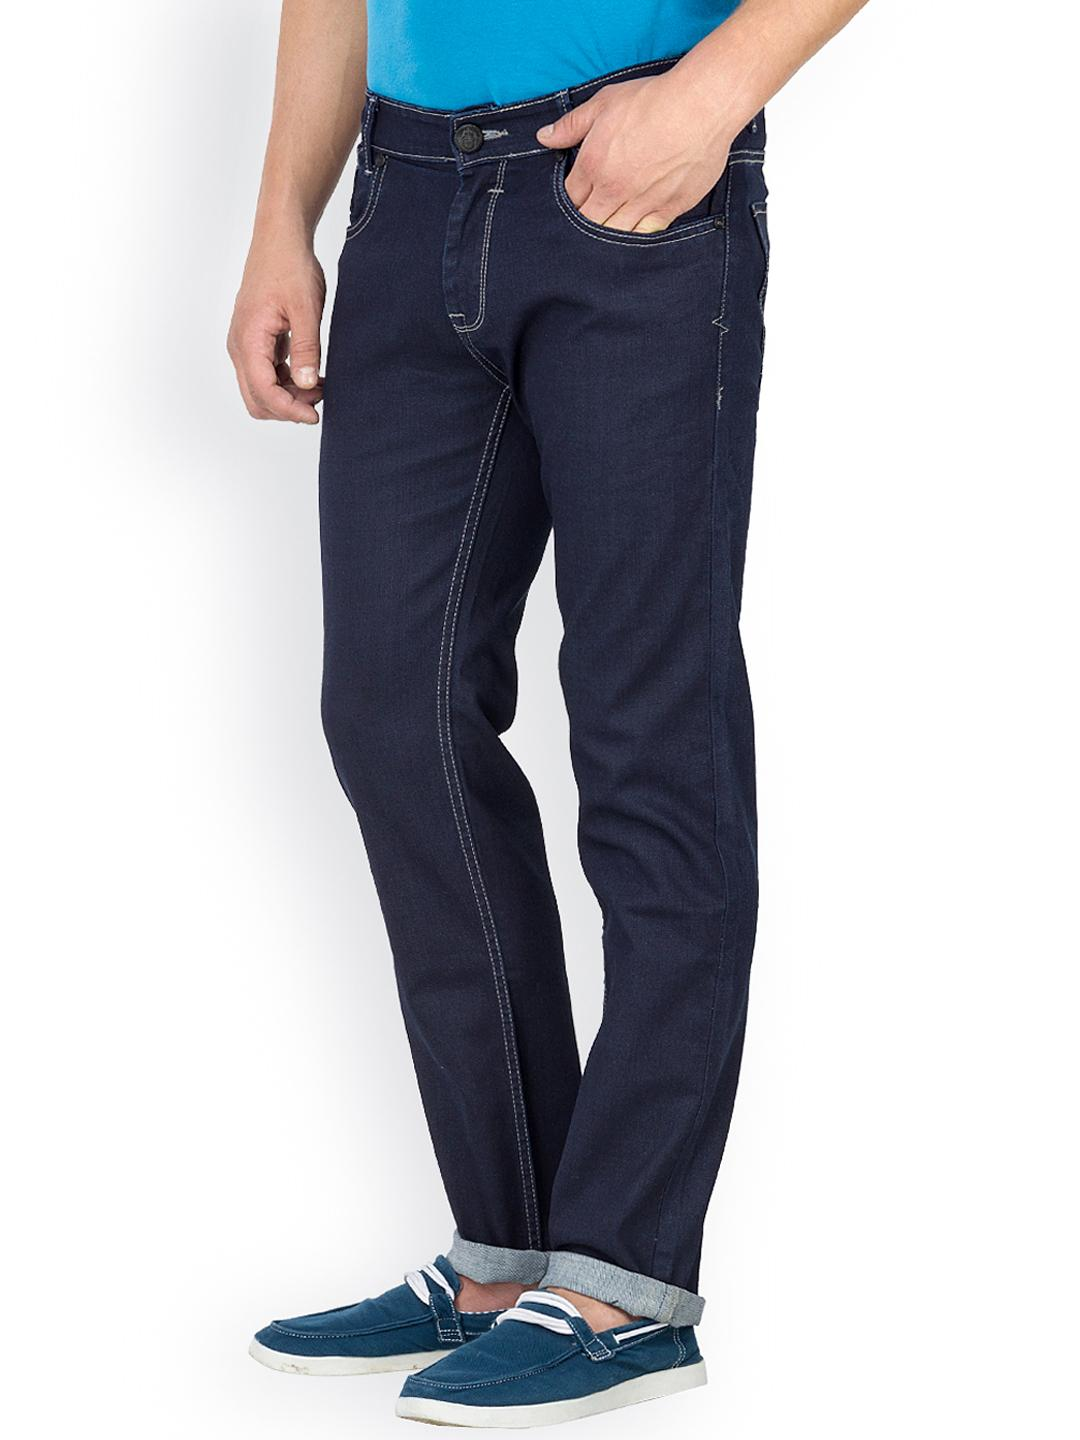 Myntra Mufti Men Navy Blue Tapered Jeans 800957 | Buy Myntra Mufti Jeans at best price online ...